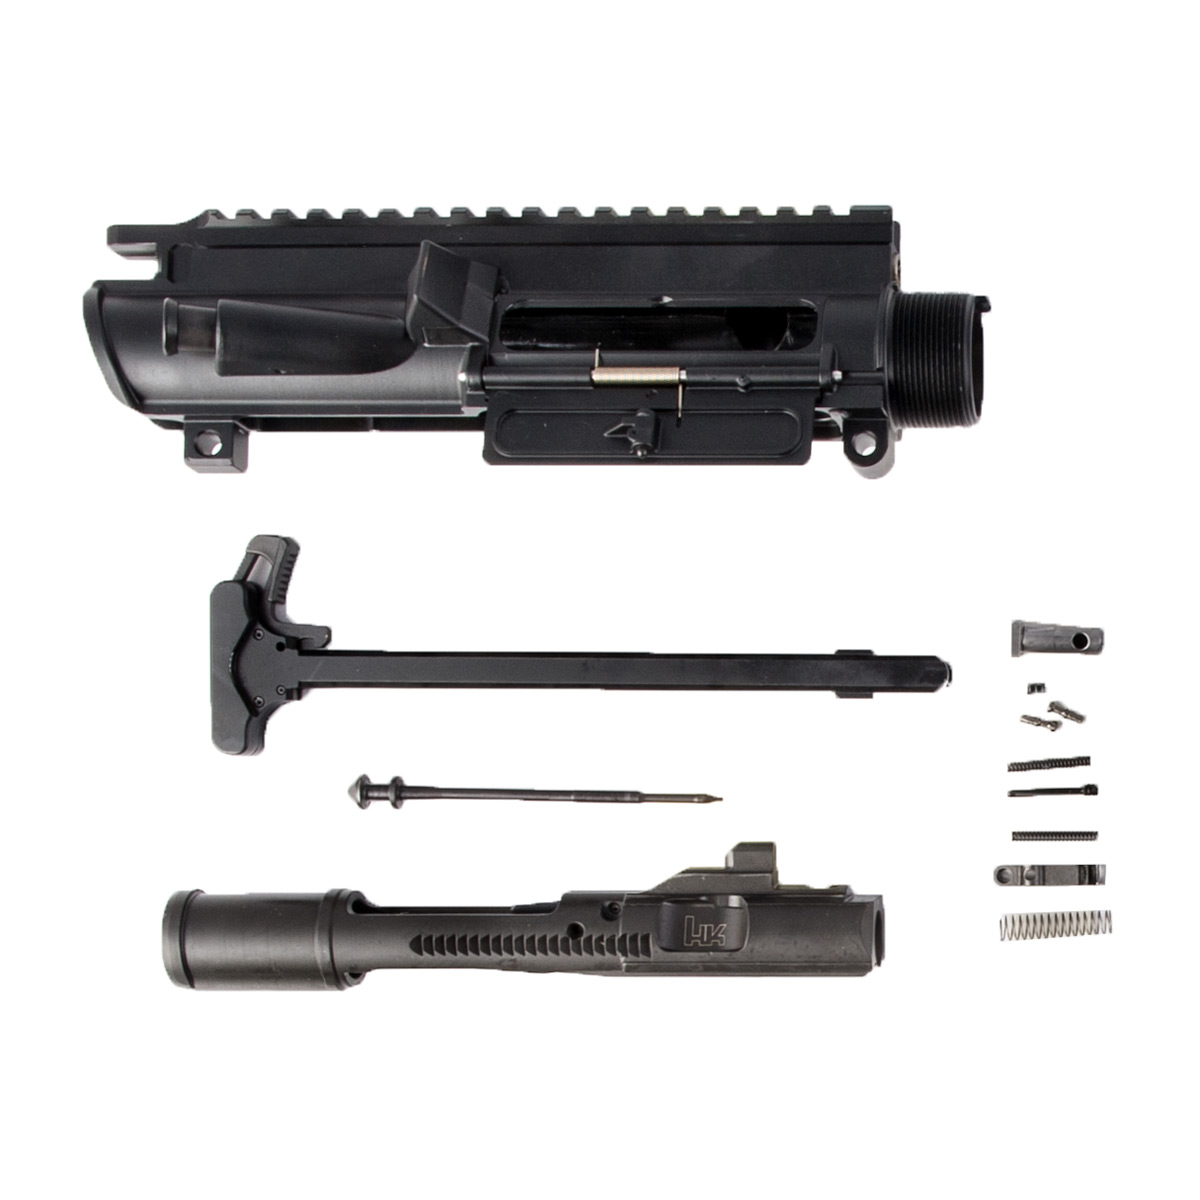 Brownell's HK416/417 Parts Are HERE And Will Be Available